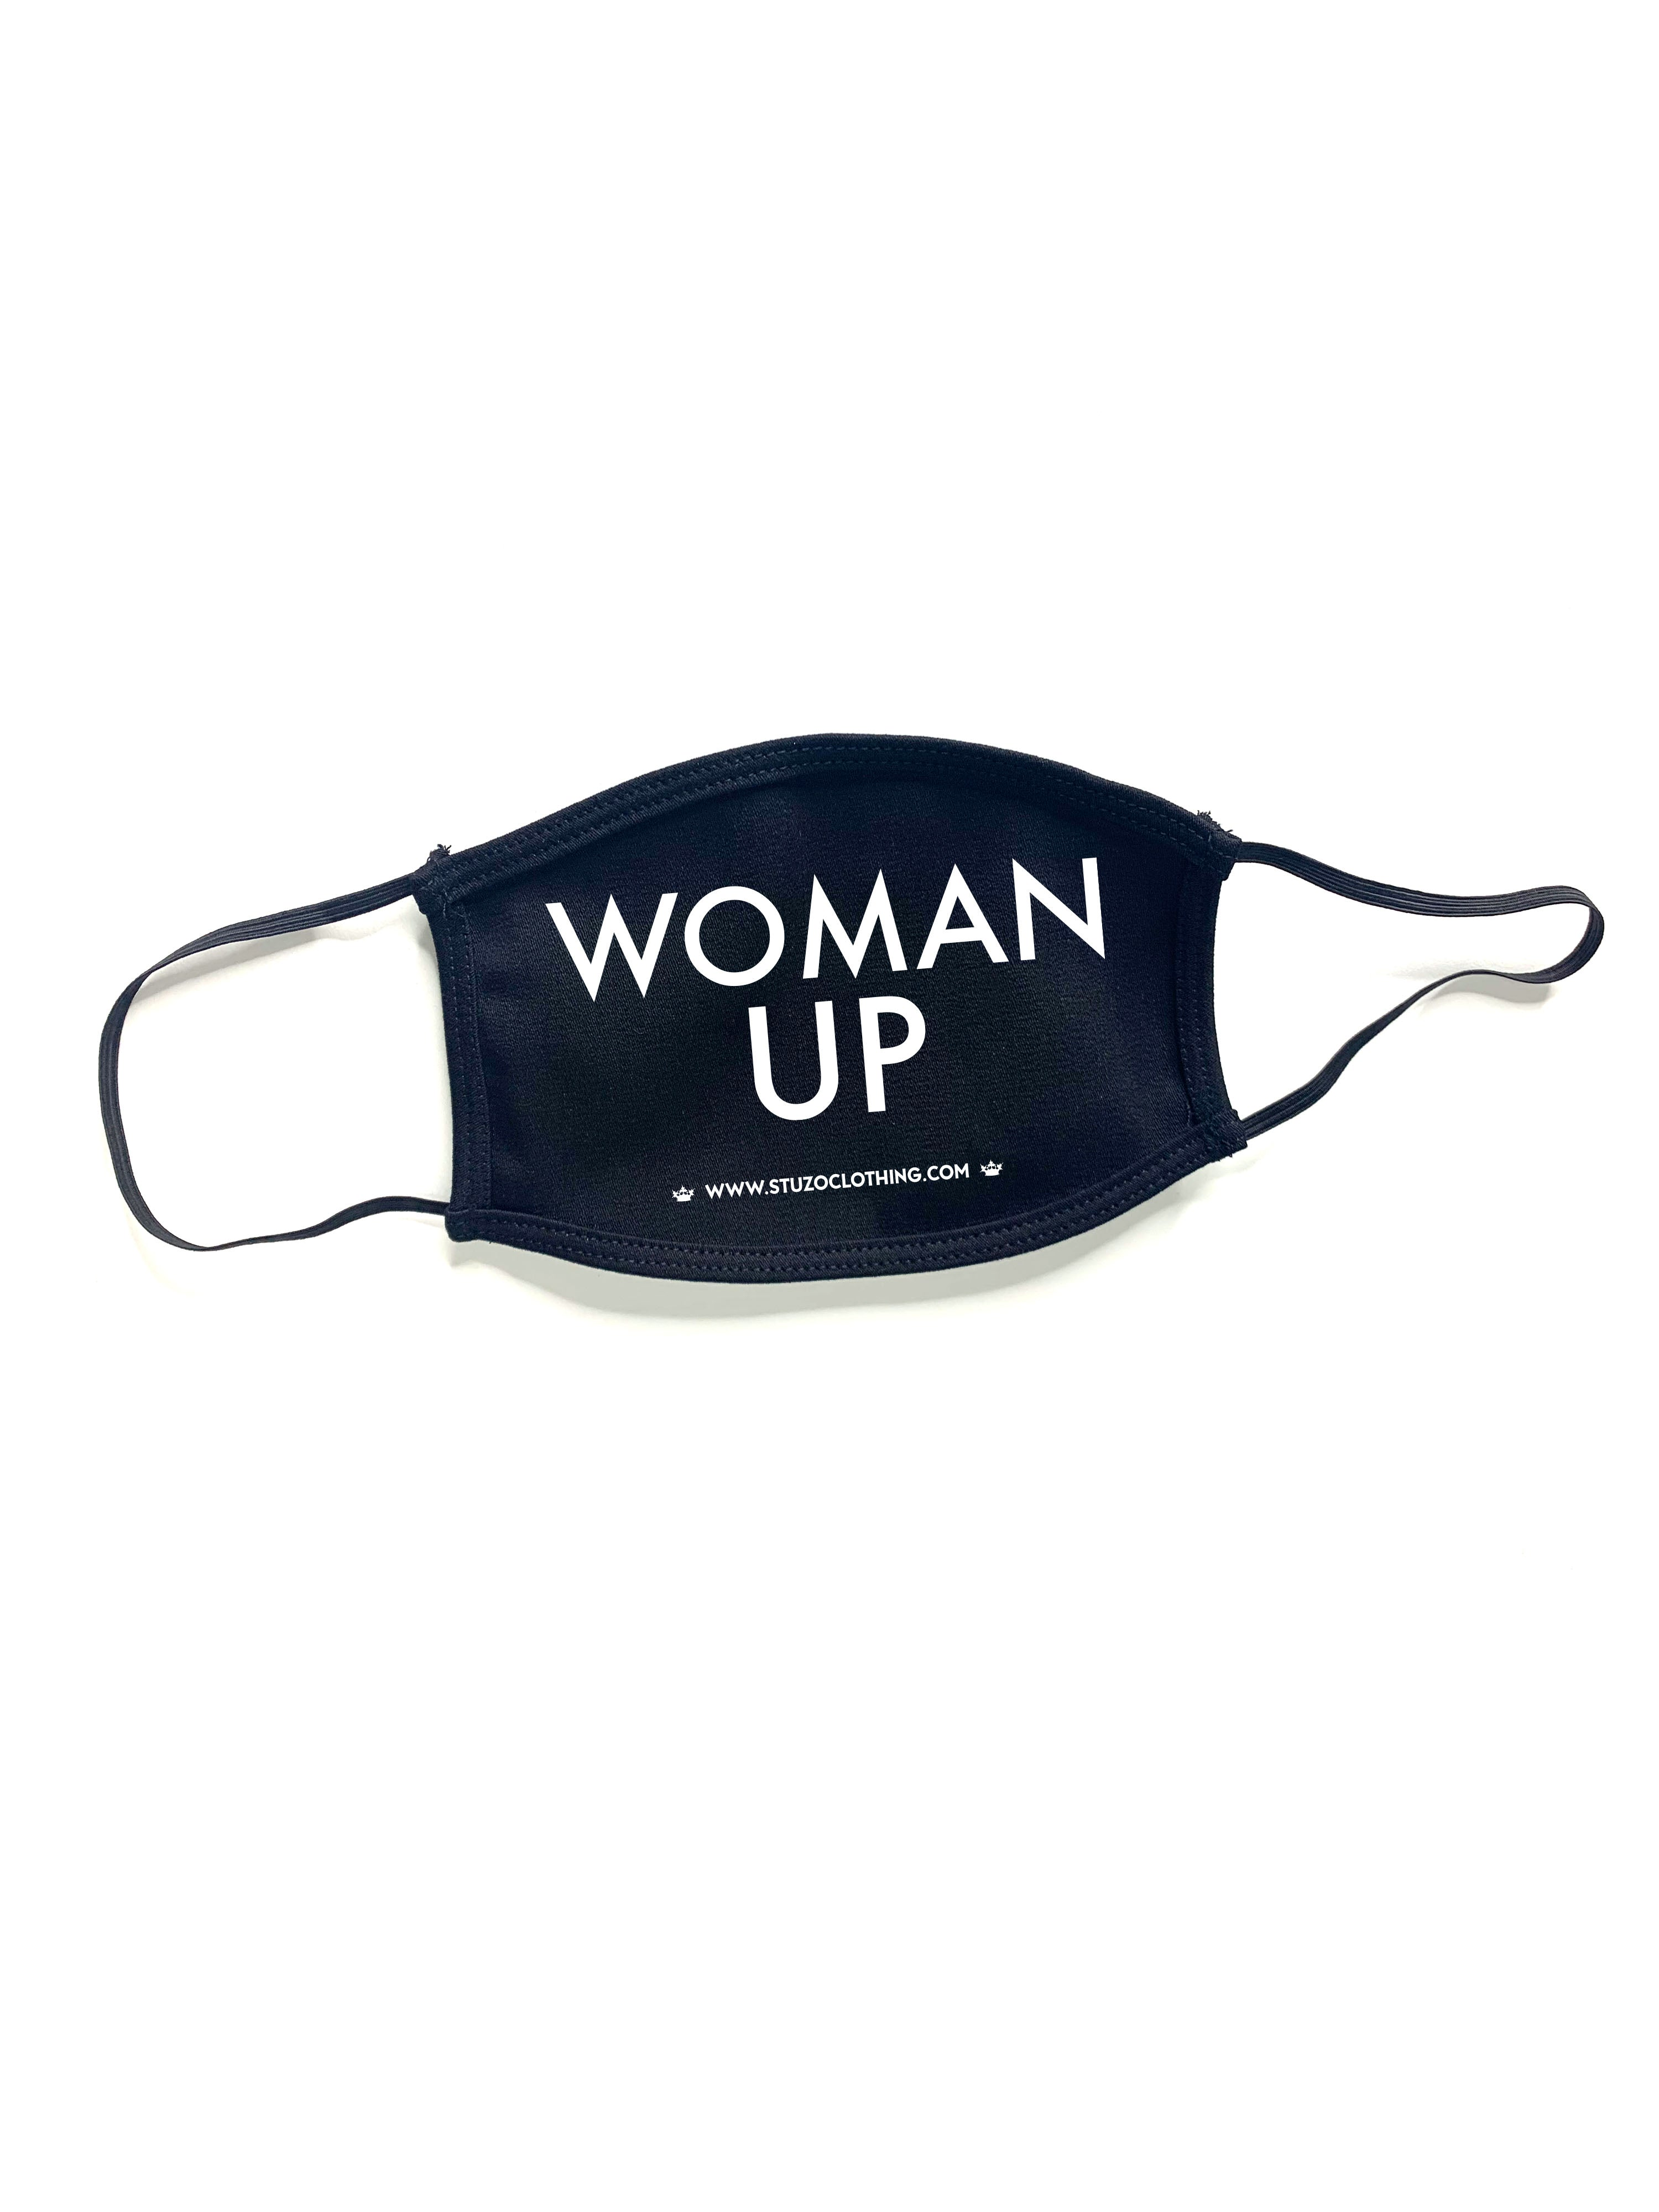 WOMAN UP FACE MASK